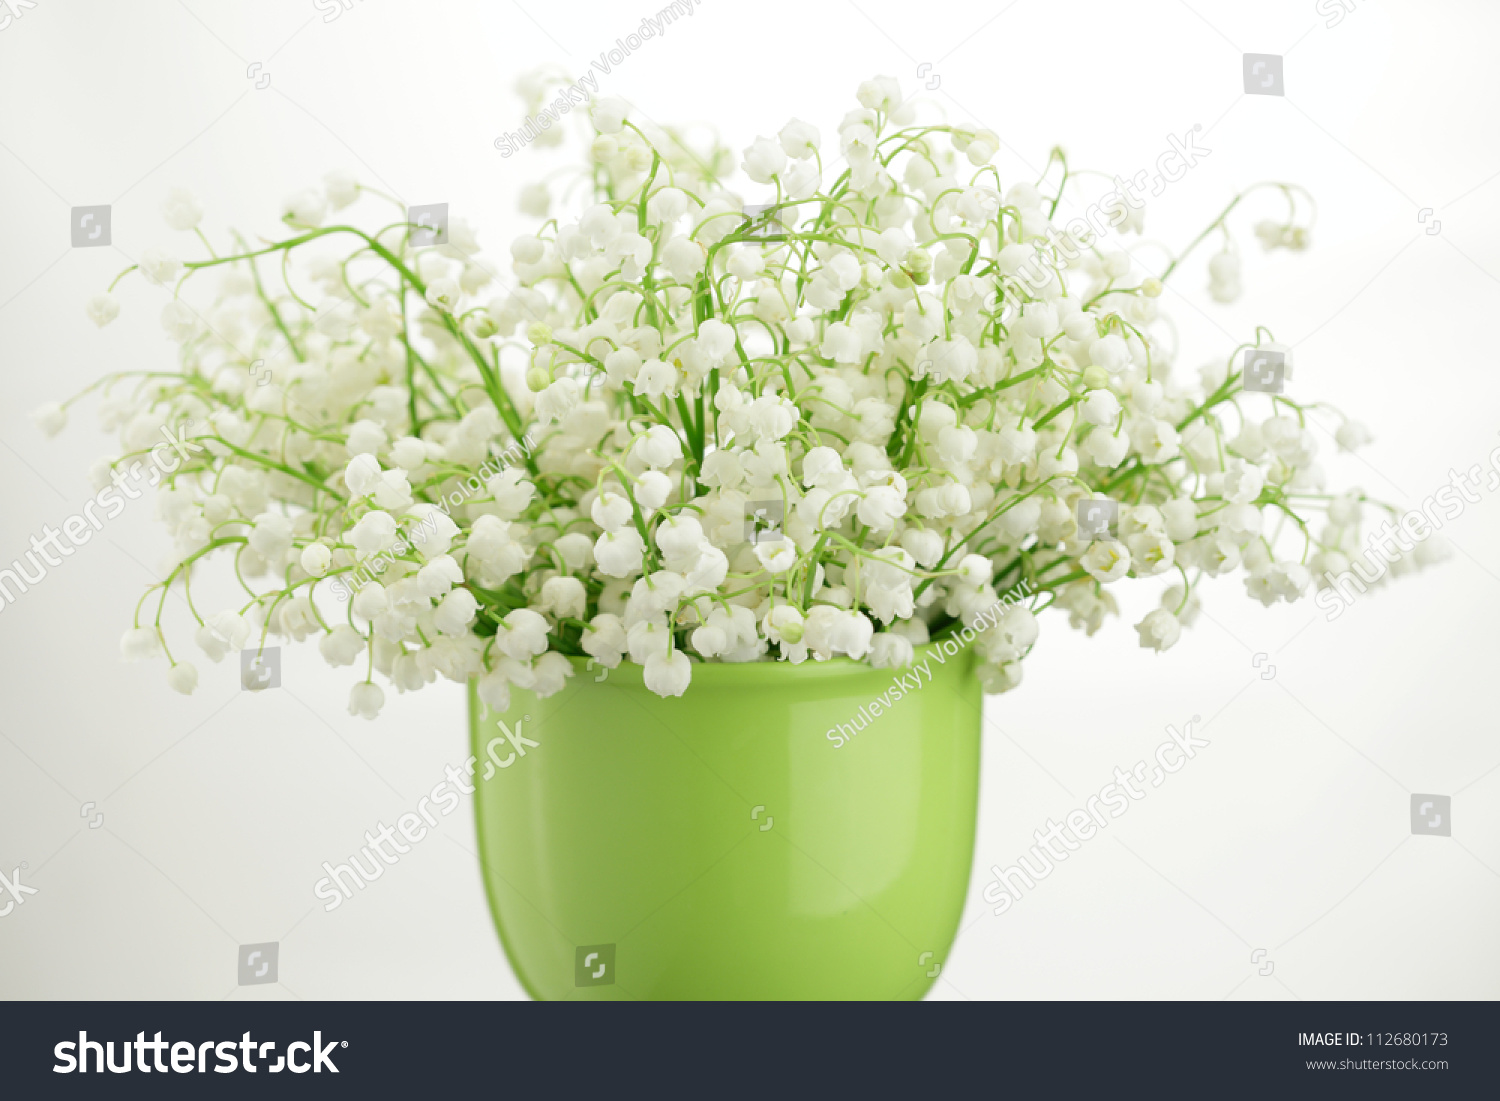 Lily valley bouquet vase isolated on stock photo 112680173 lily of the valley bouquet in a vase isolated on white background reviewsmspy